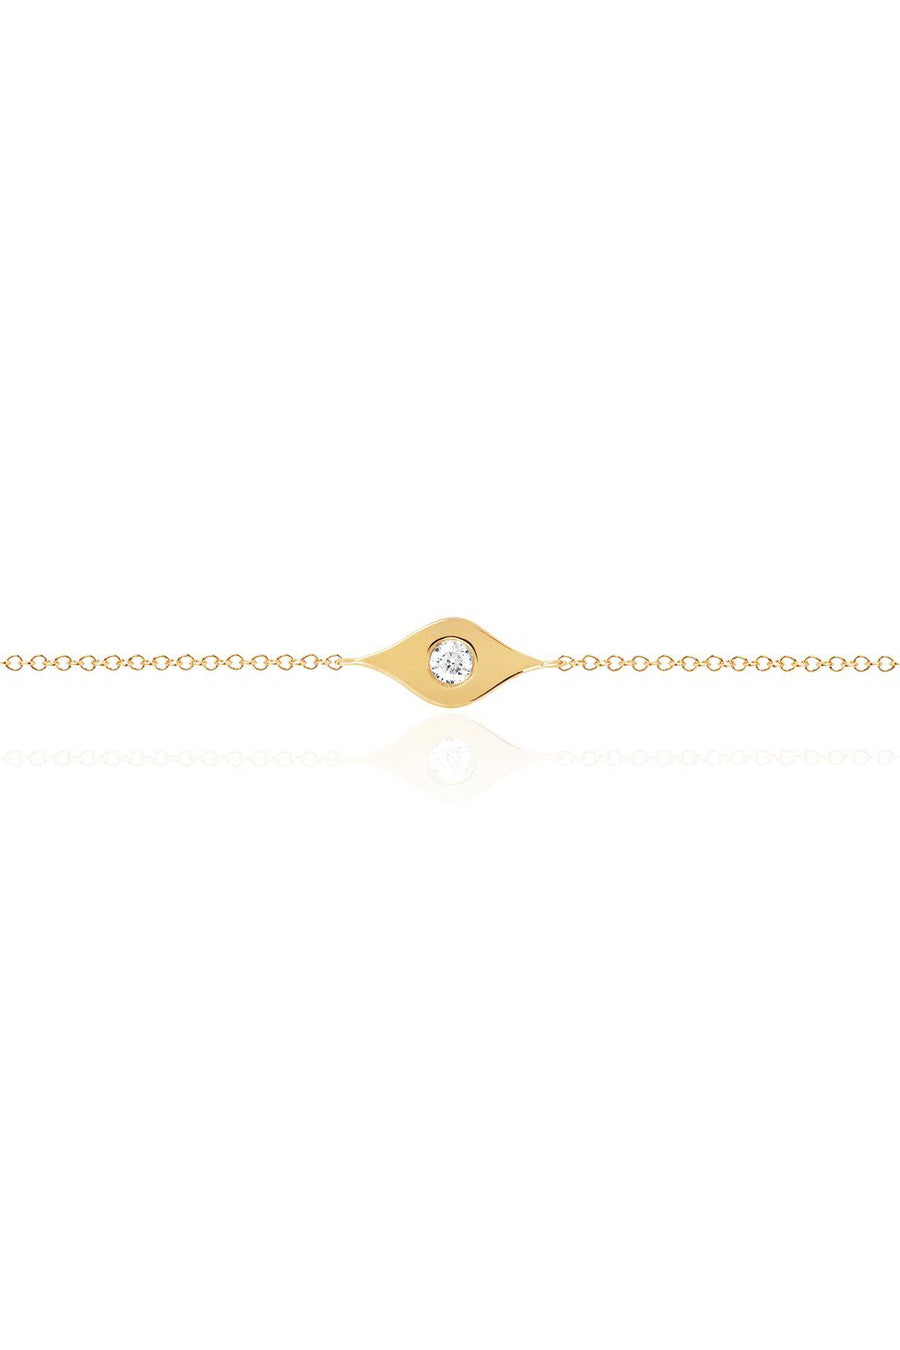 Gold & Diamond Evil Eye Bracelet - Pavilion